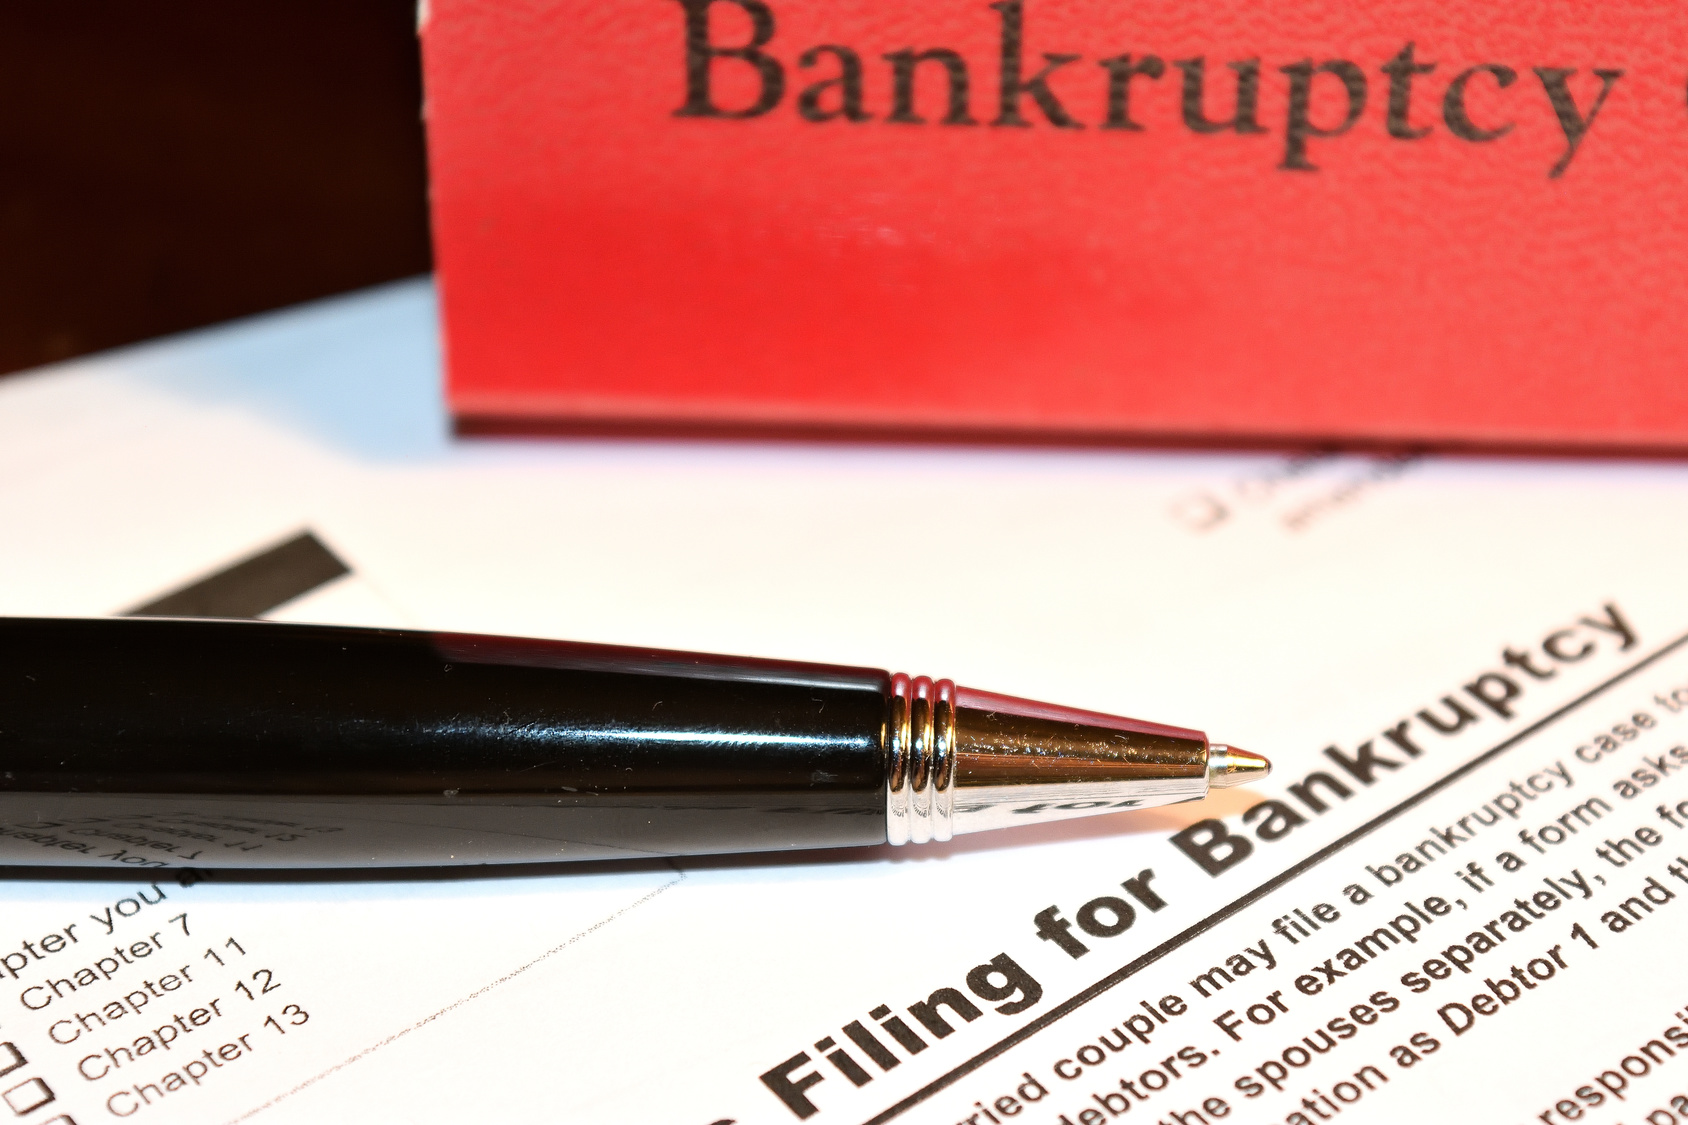 Northwest Indiana Chapter 13 Bankruptcy Lawyer